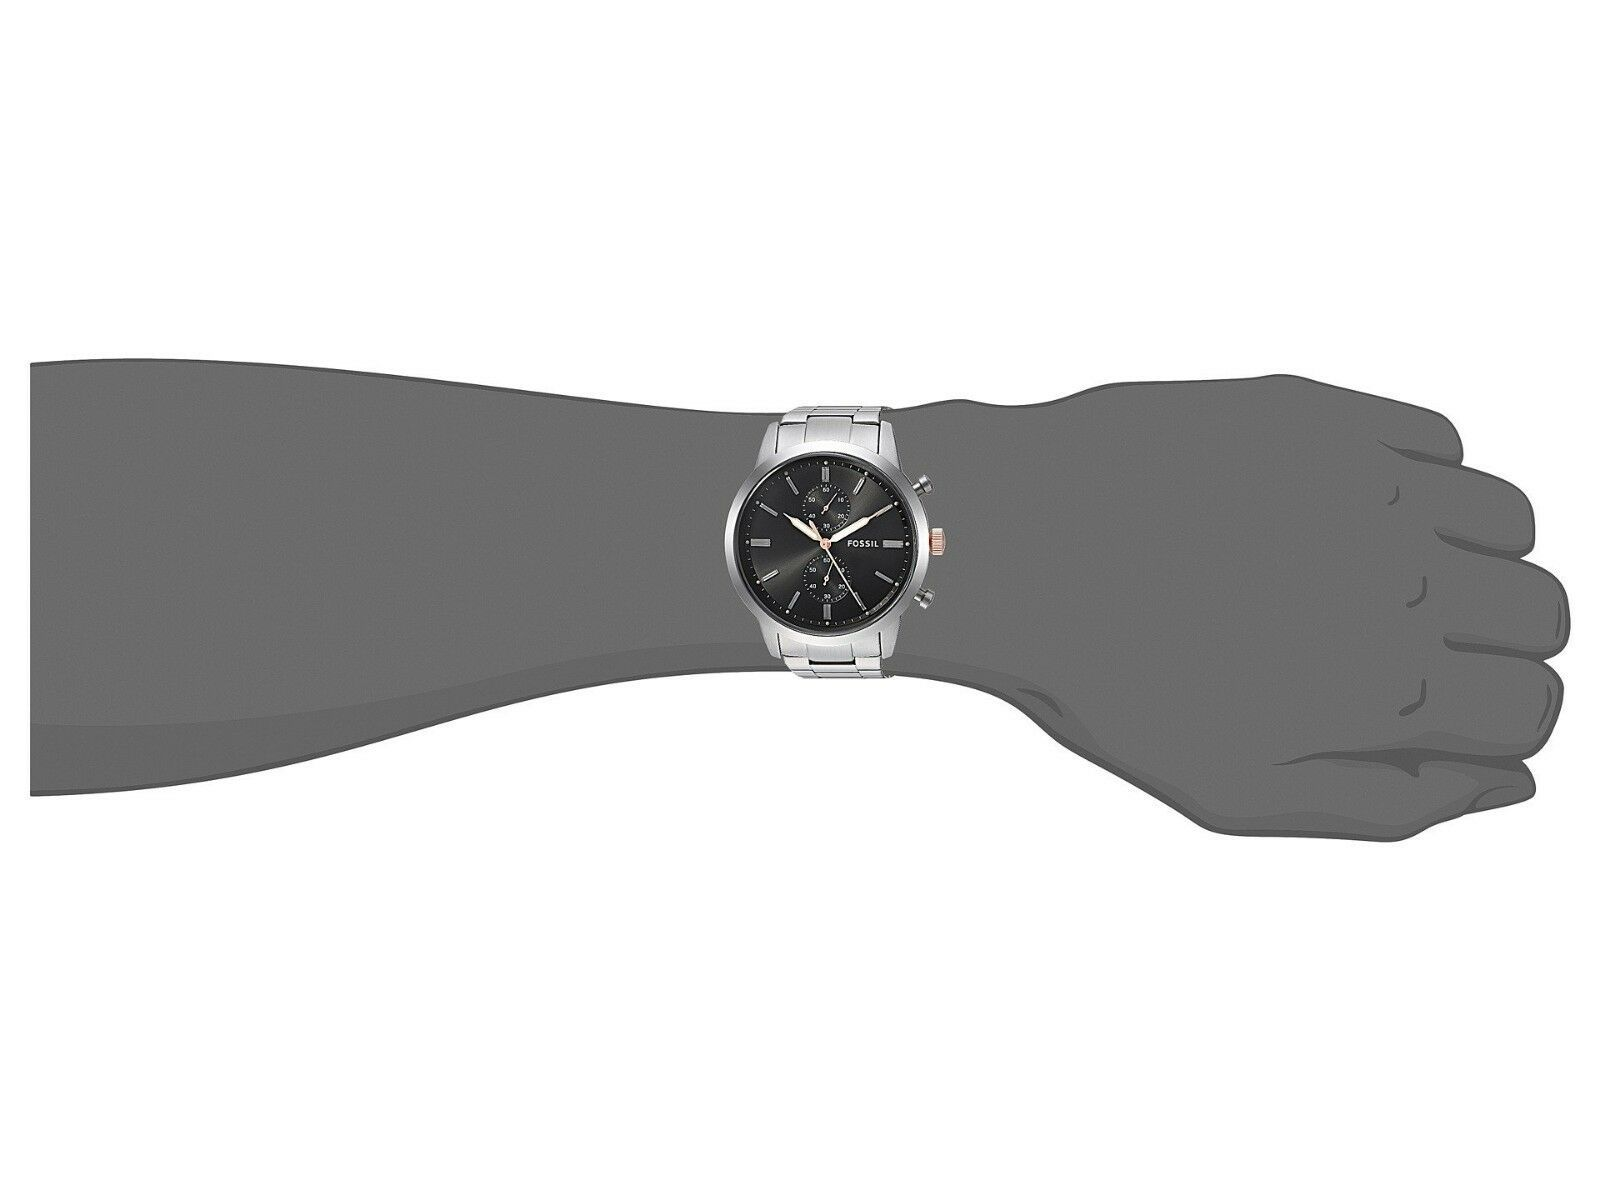 New Fossil Men's Townsman Chronograph Stainless Steel Watch Variety Color image 9